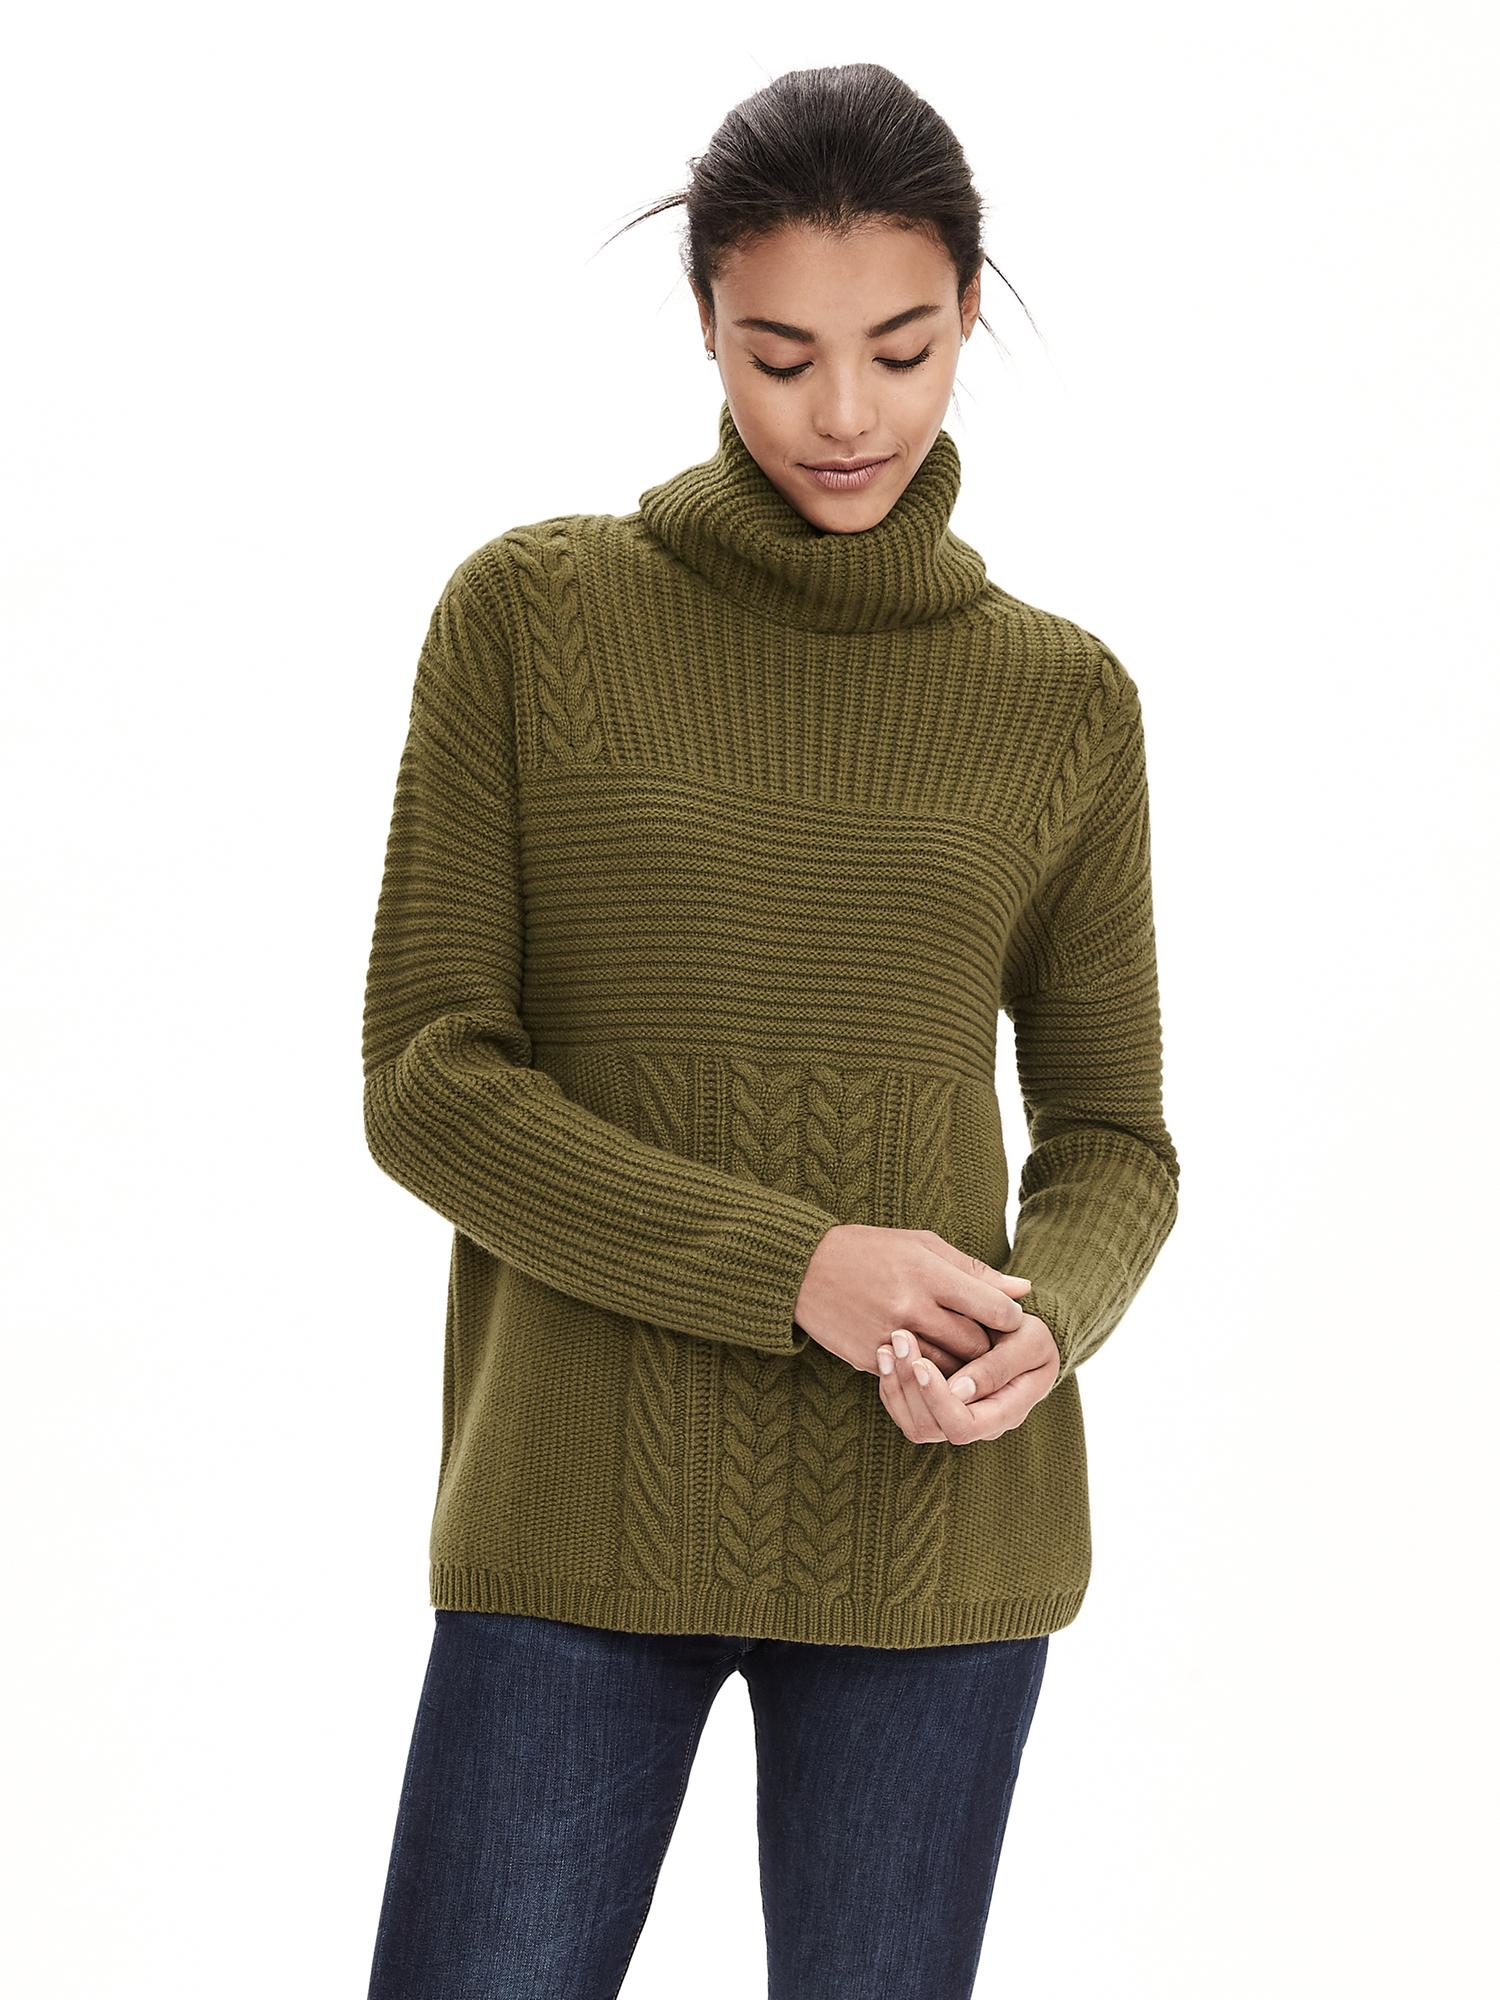 aa939c884a Banana amp; In Todd Republic Lyst Cashmere Green Duncan Turtleneck OFRTzxdn